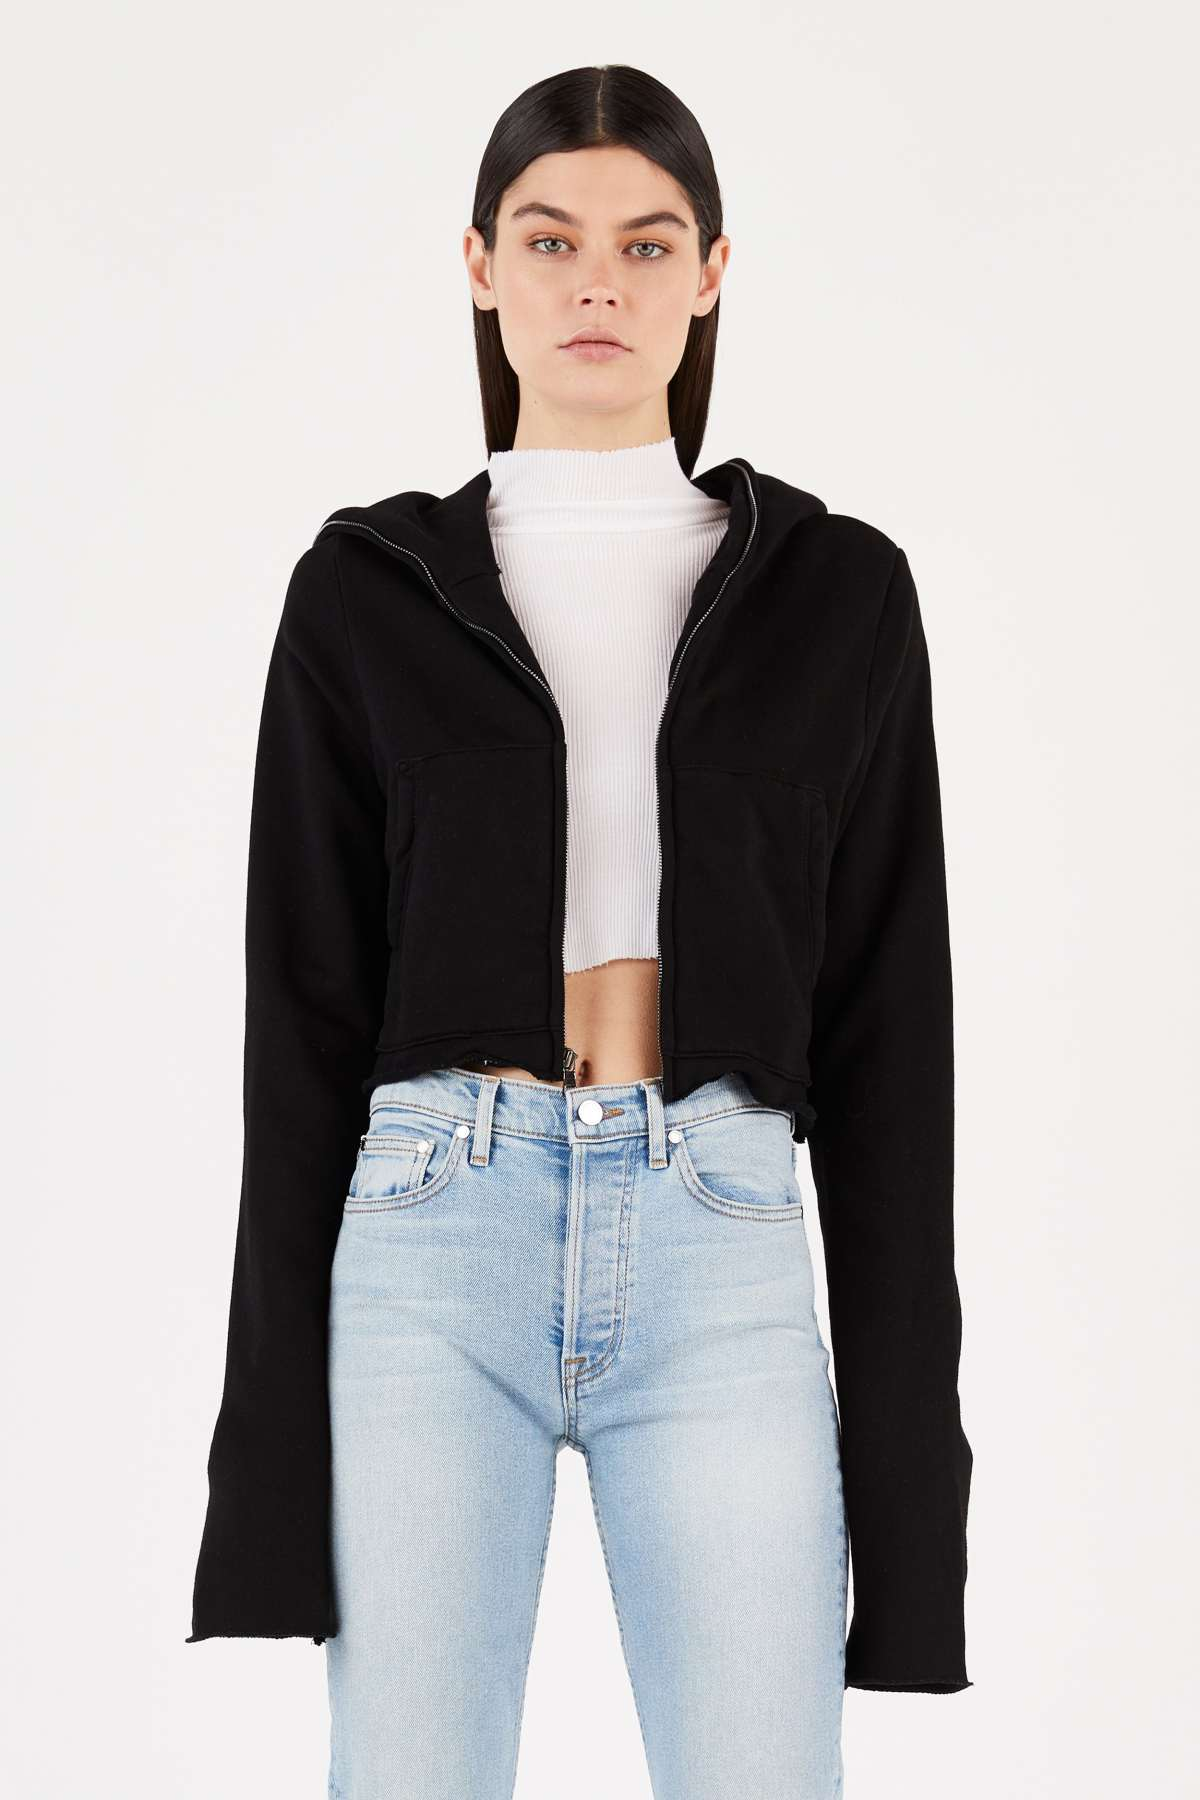 Manhattan Zip Hoodie by Cotton Citizen, available on cottoncitizen.com for $250 Kylie Jenner Top Exact Product